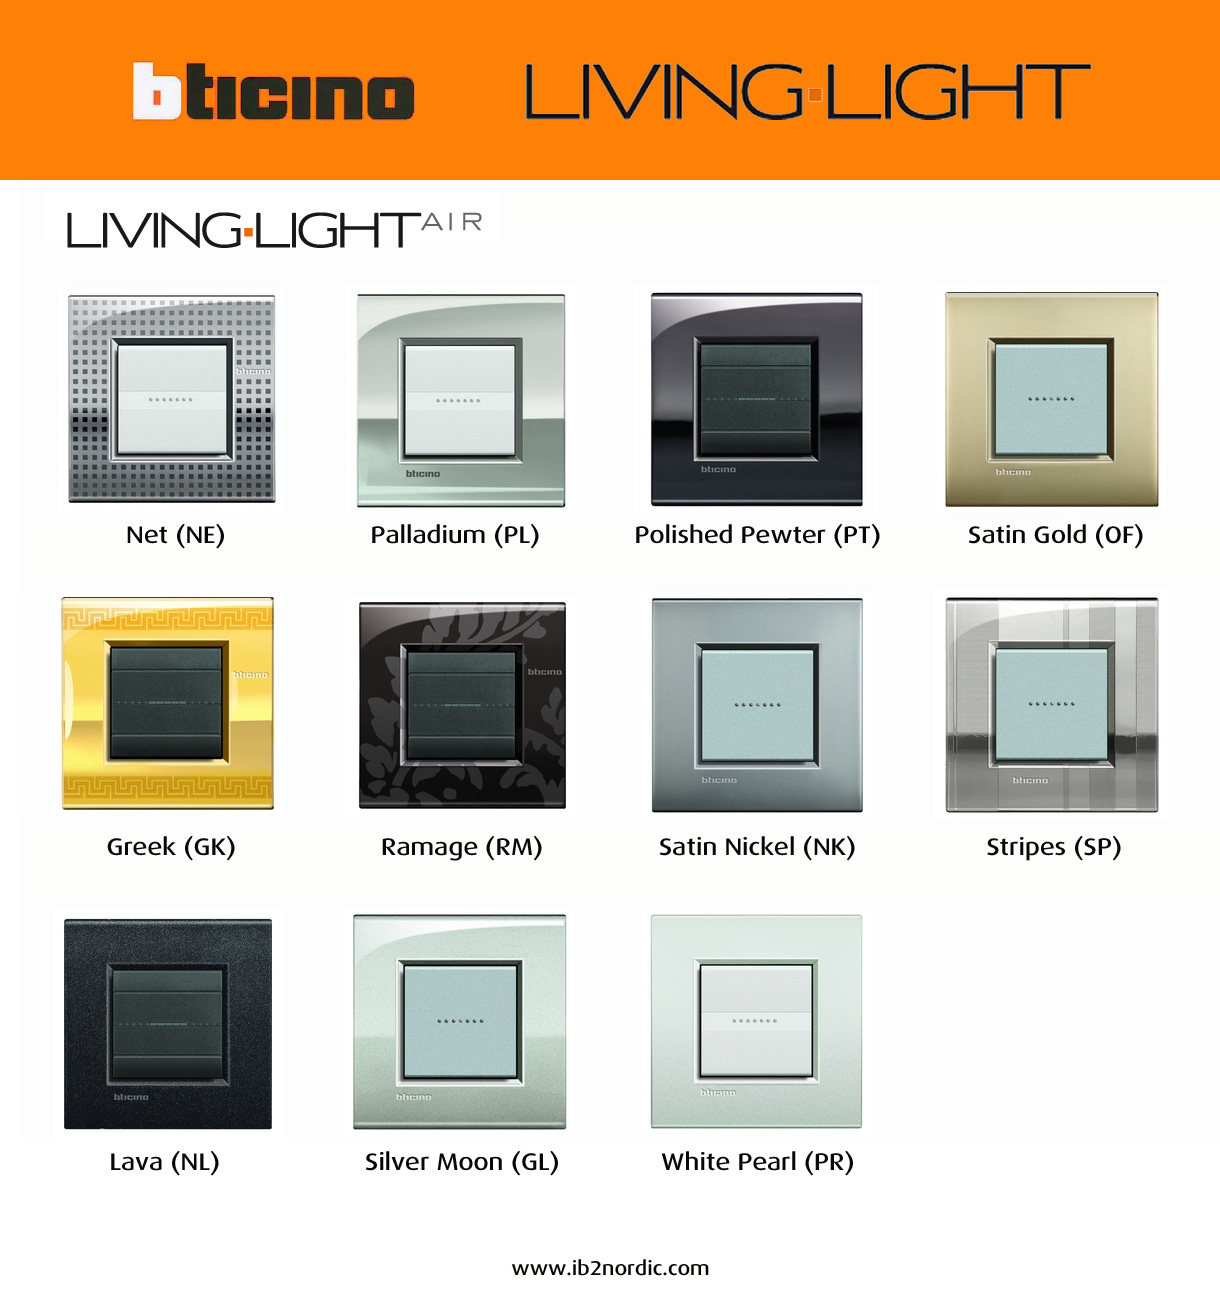 Ib2nordic new livinglight air for Bticino living